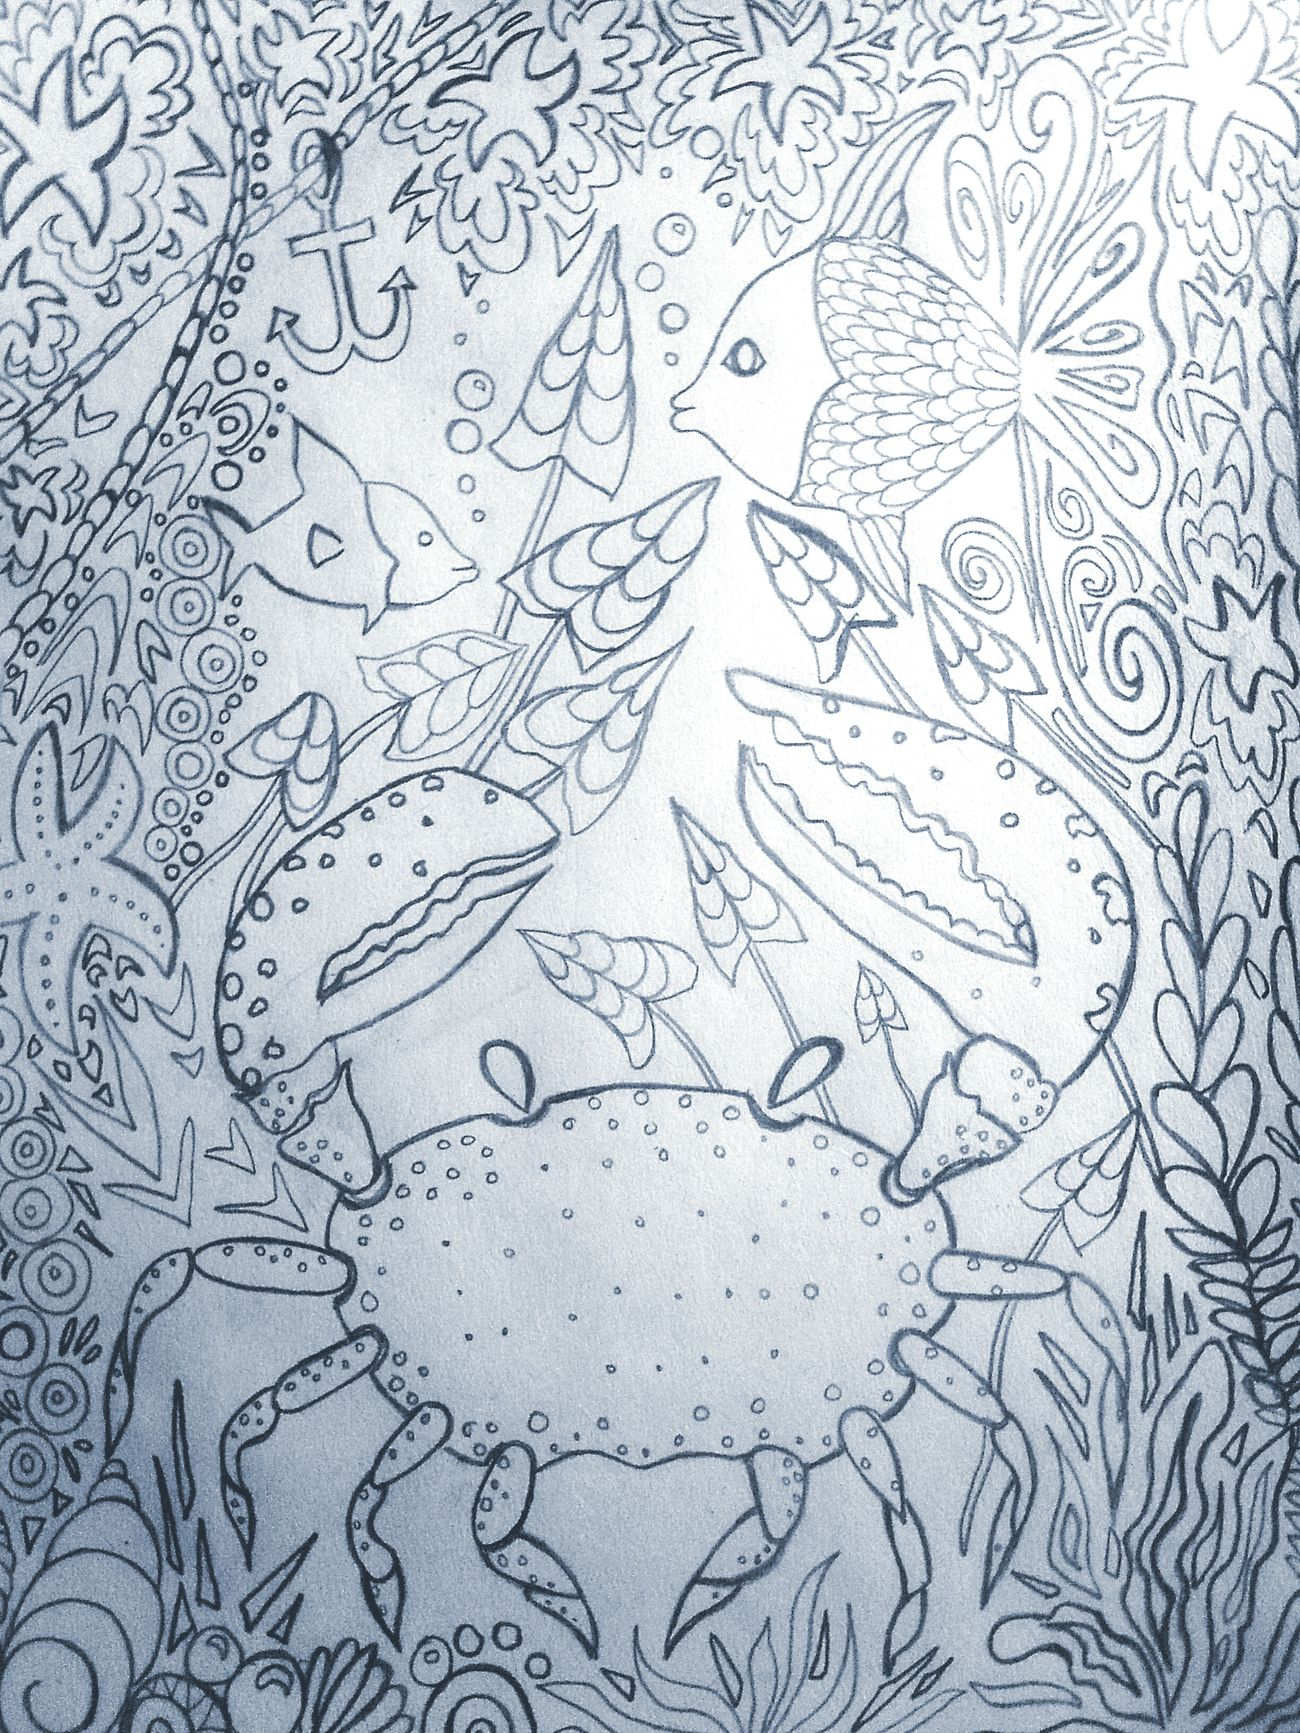 Underthesea Drawingoftheday Art, Drawing, Creativity Crab Starfish  Bubbles Art Therapy